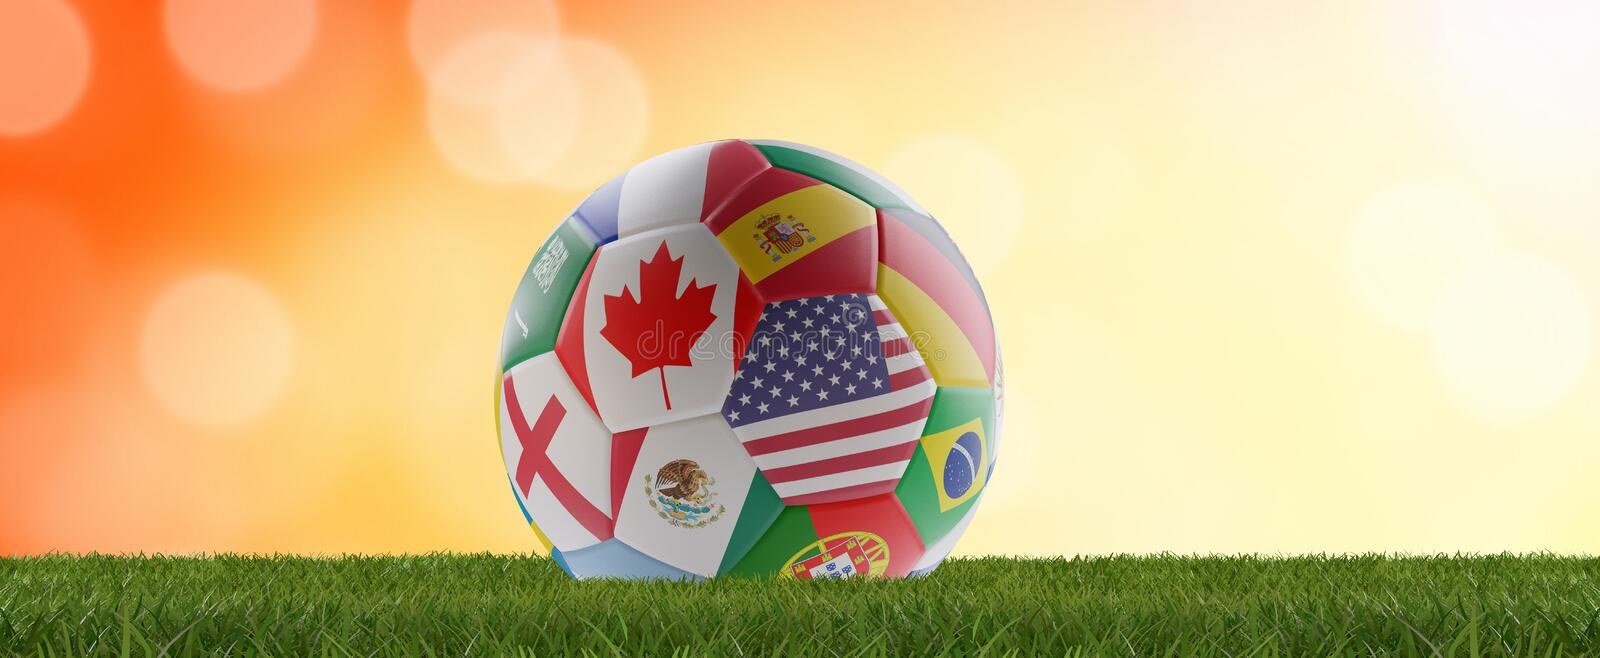 Flags soccer ball design with USA Canada and Mexico on orange background 3d-illustration vector illustration